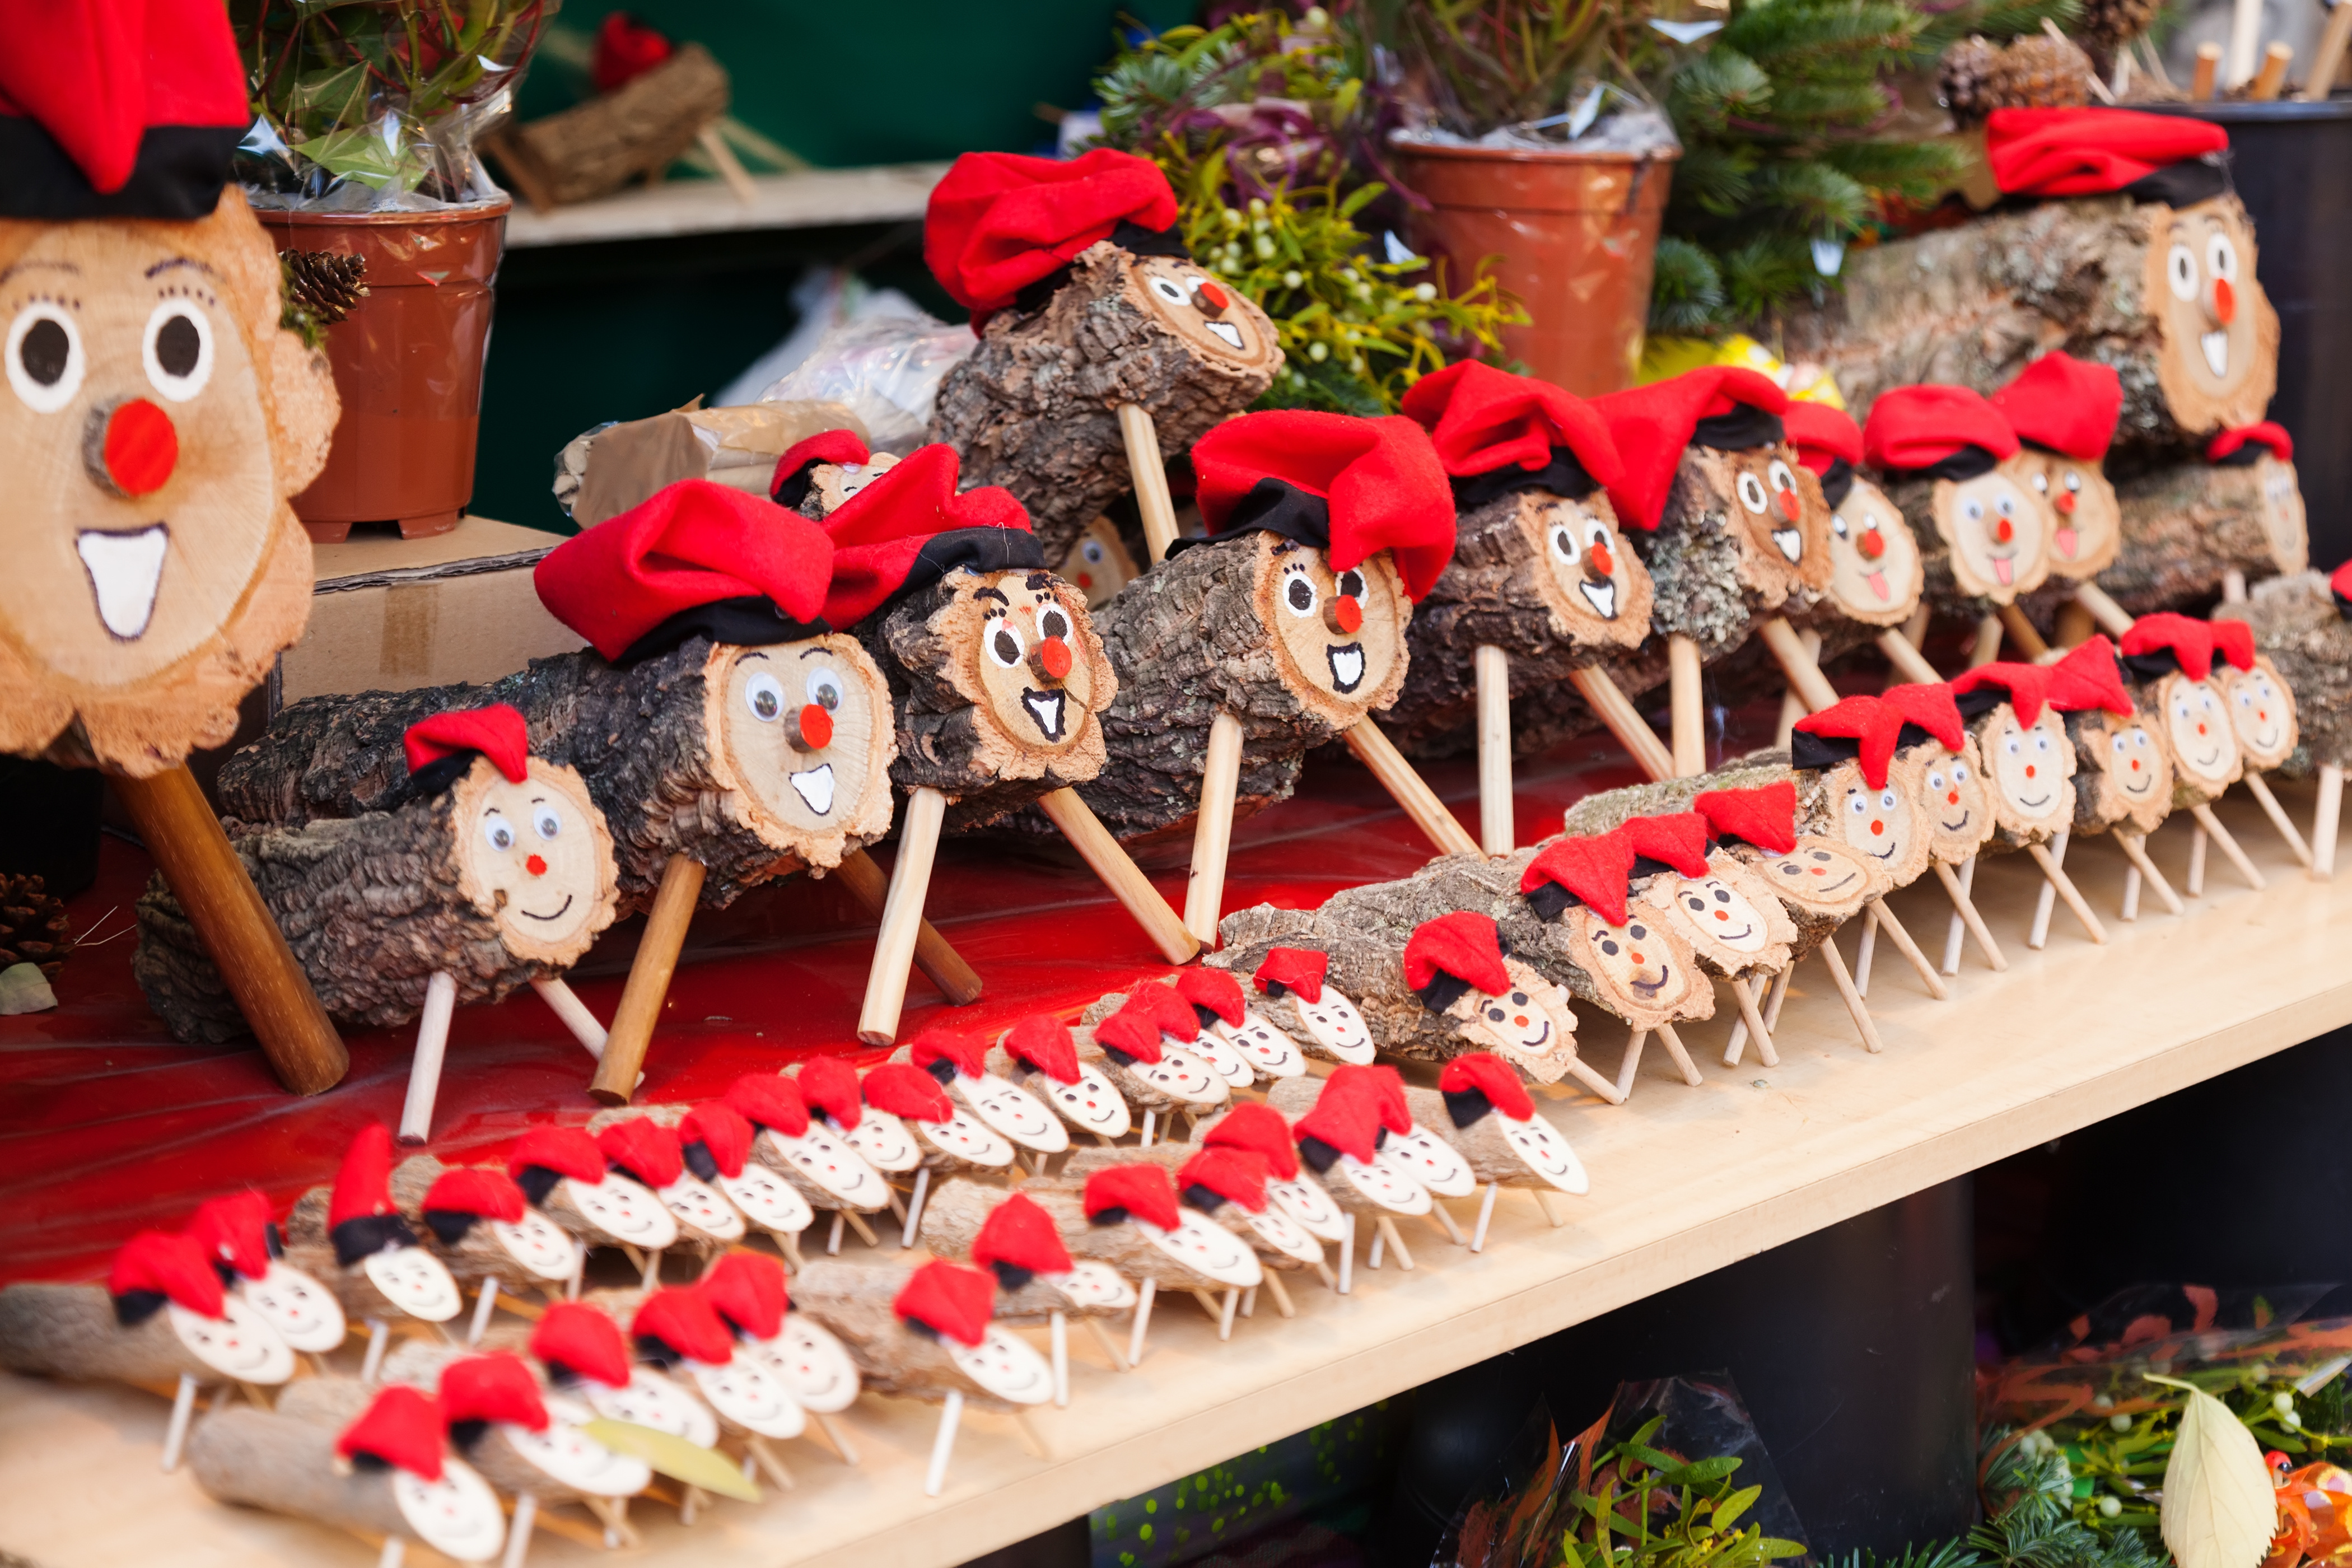 Tio de Nadal is character in Catalan mythology relating to Christmas tradition widespread in Catalonia